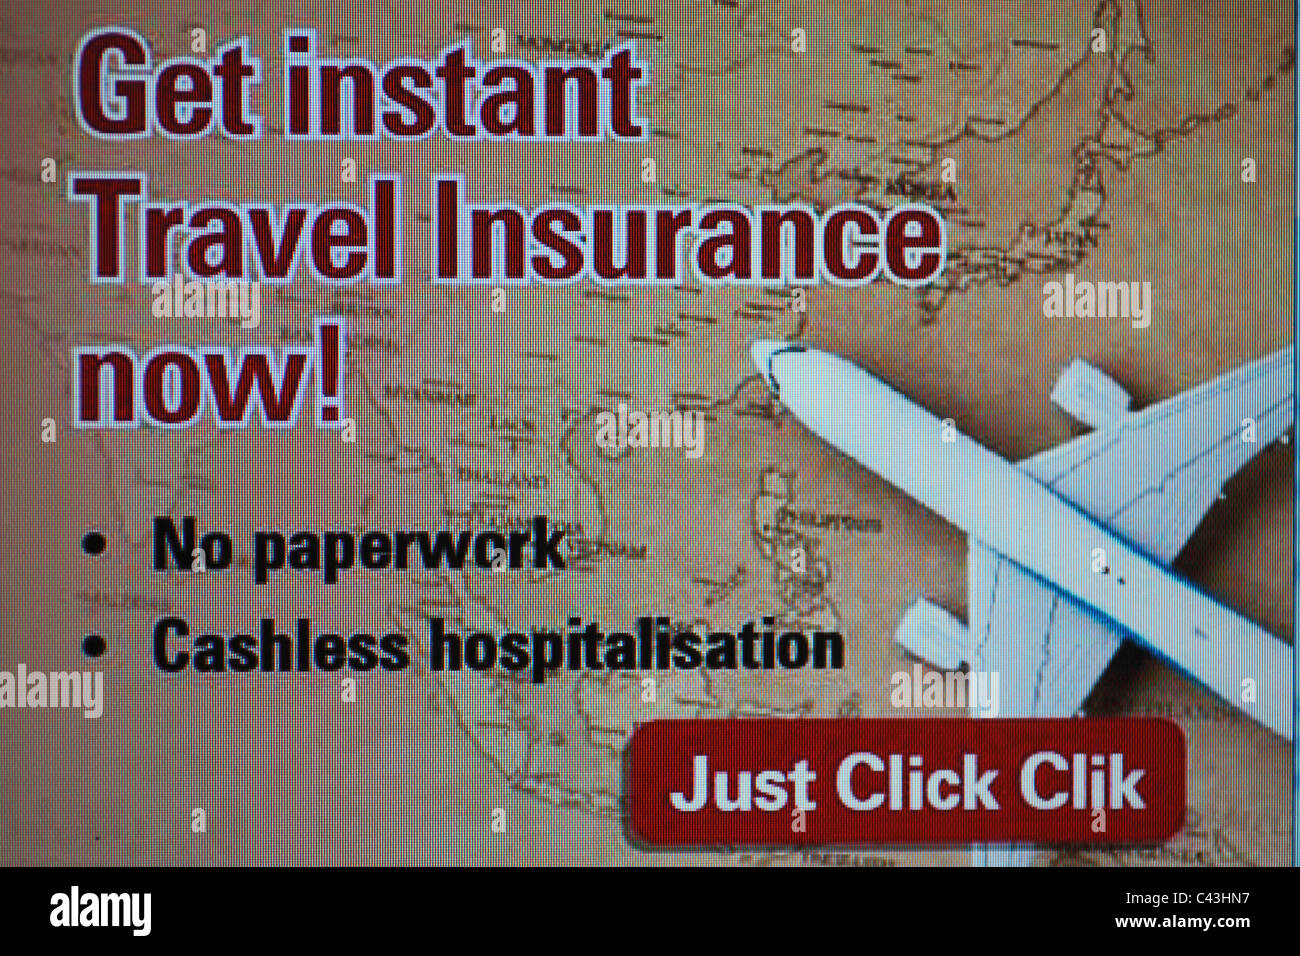 advertisement travel insurance commerce trade business aerospace industry - Stock Image